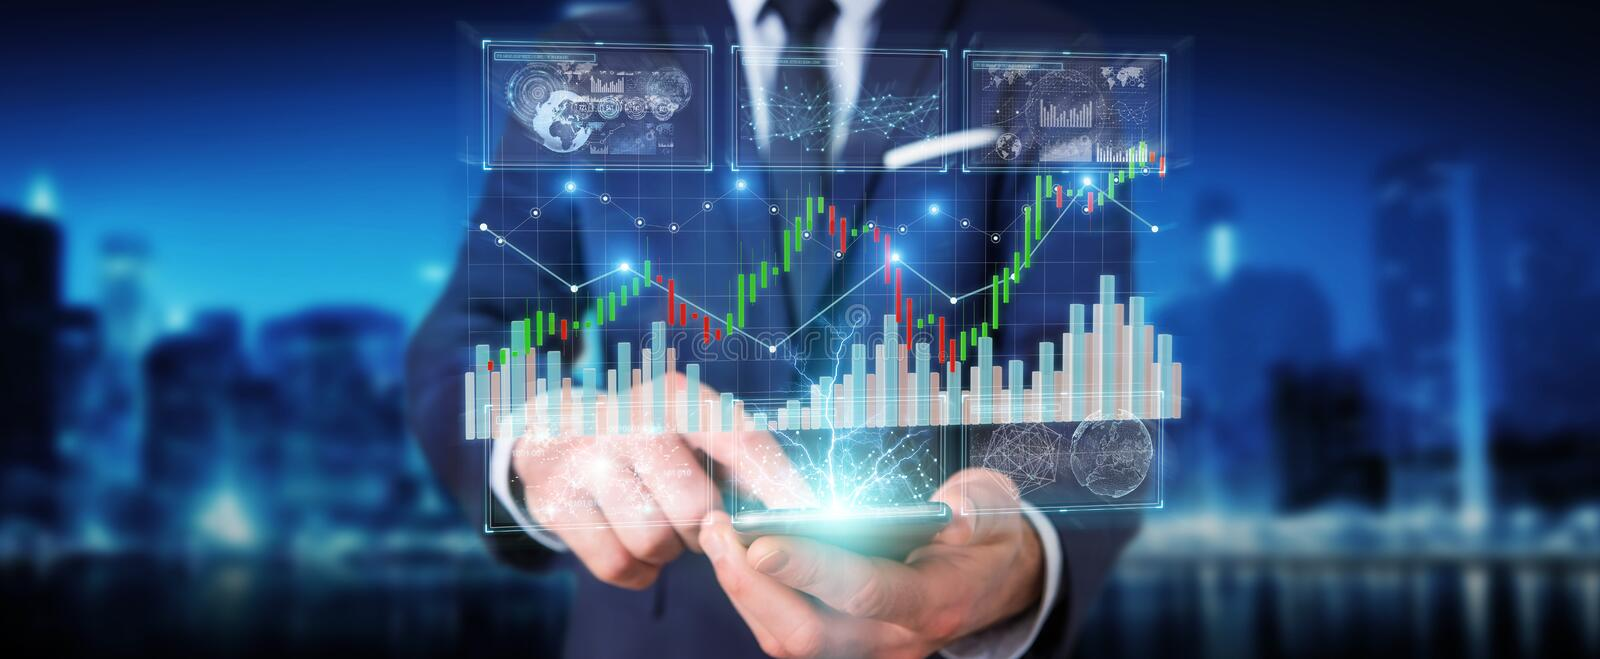 Businessman using 3D rendering stock exchange datas and charts royalty free illustration